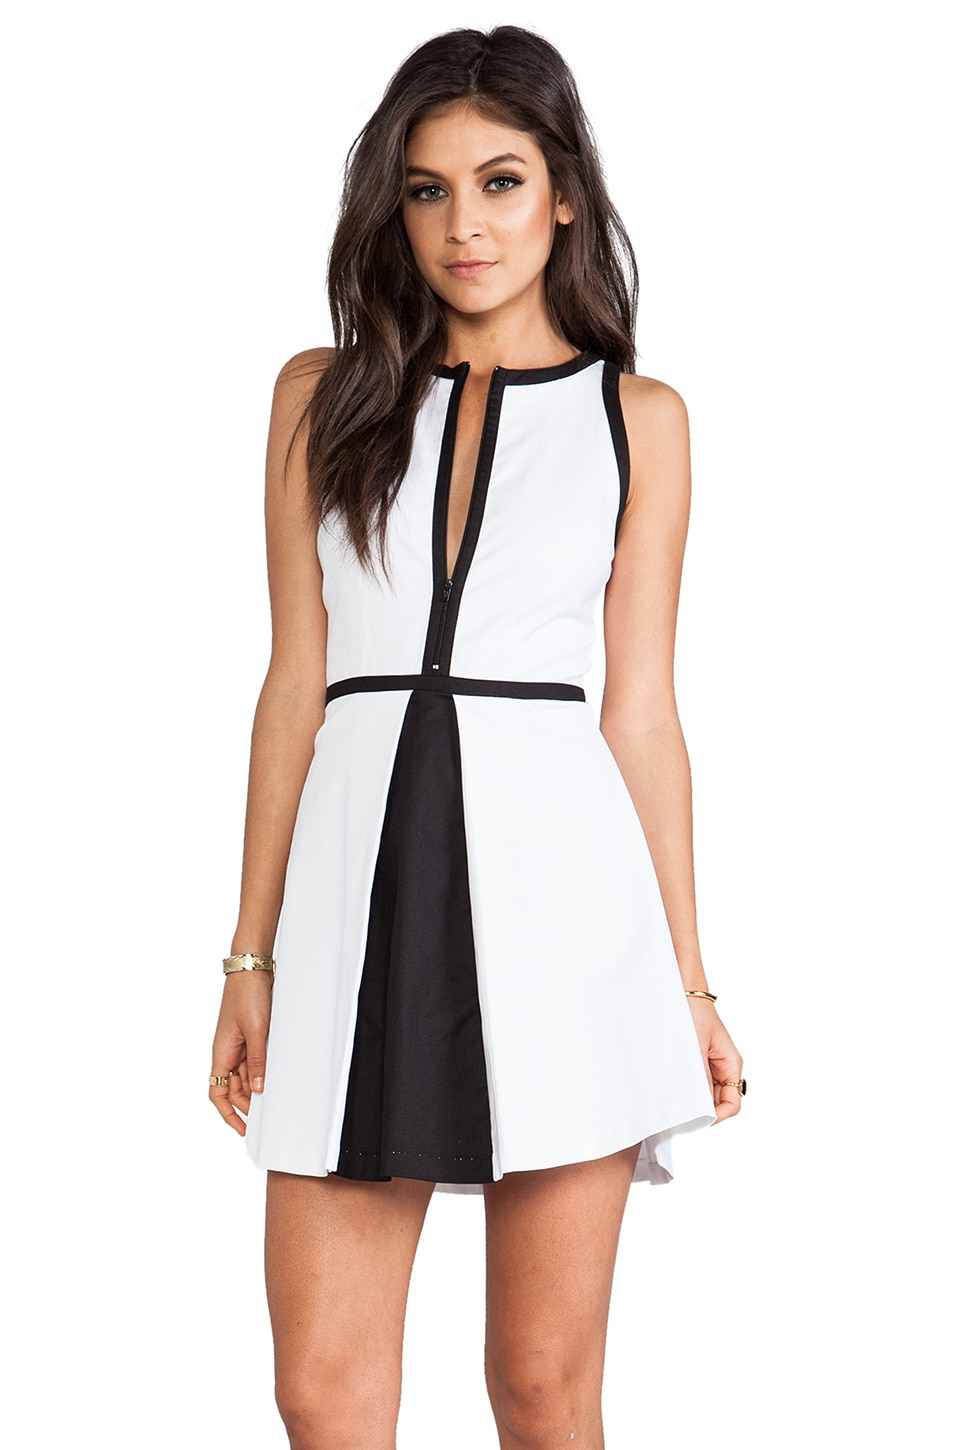 BB Dakota Derry Colorblock Palio Linen Dress in Optic White & Black